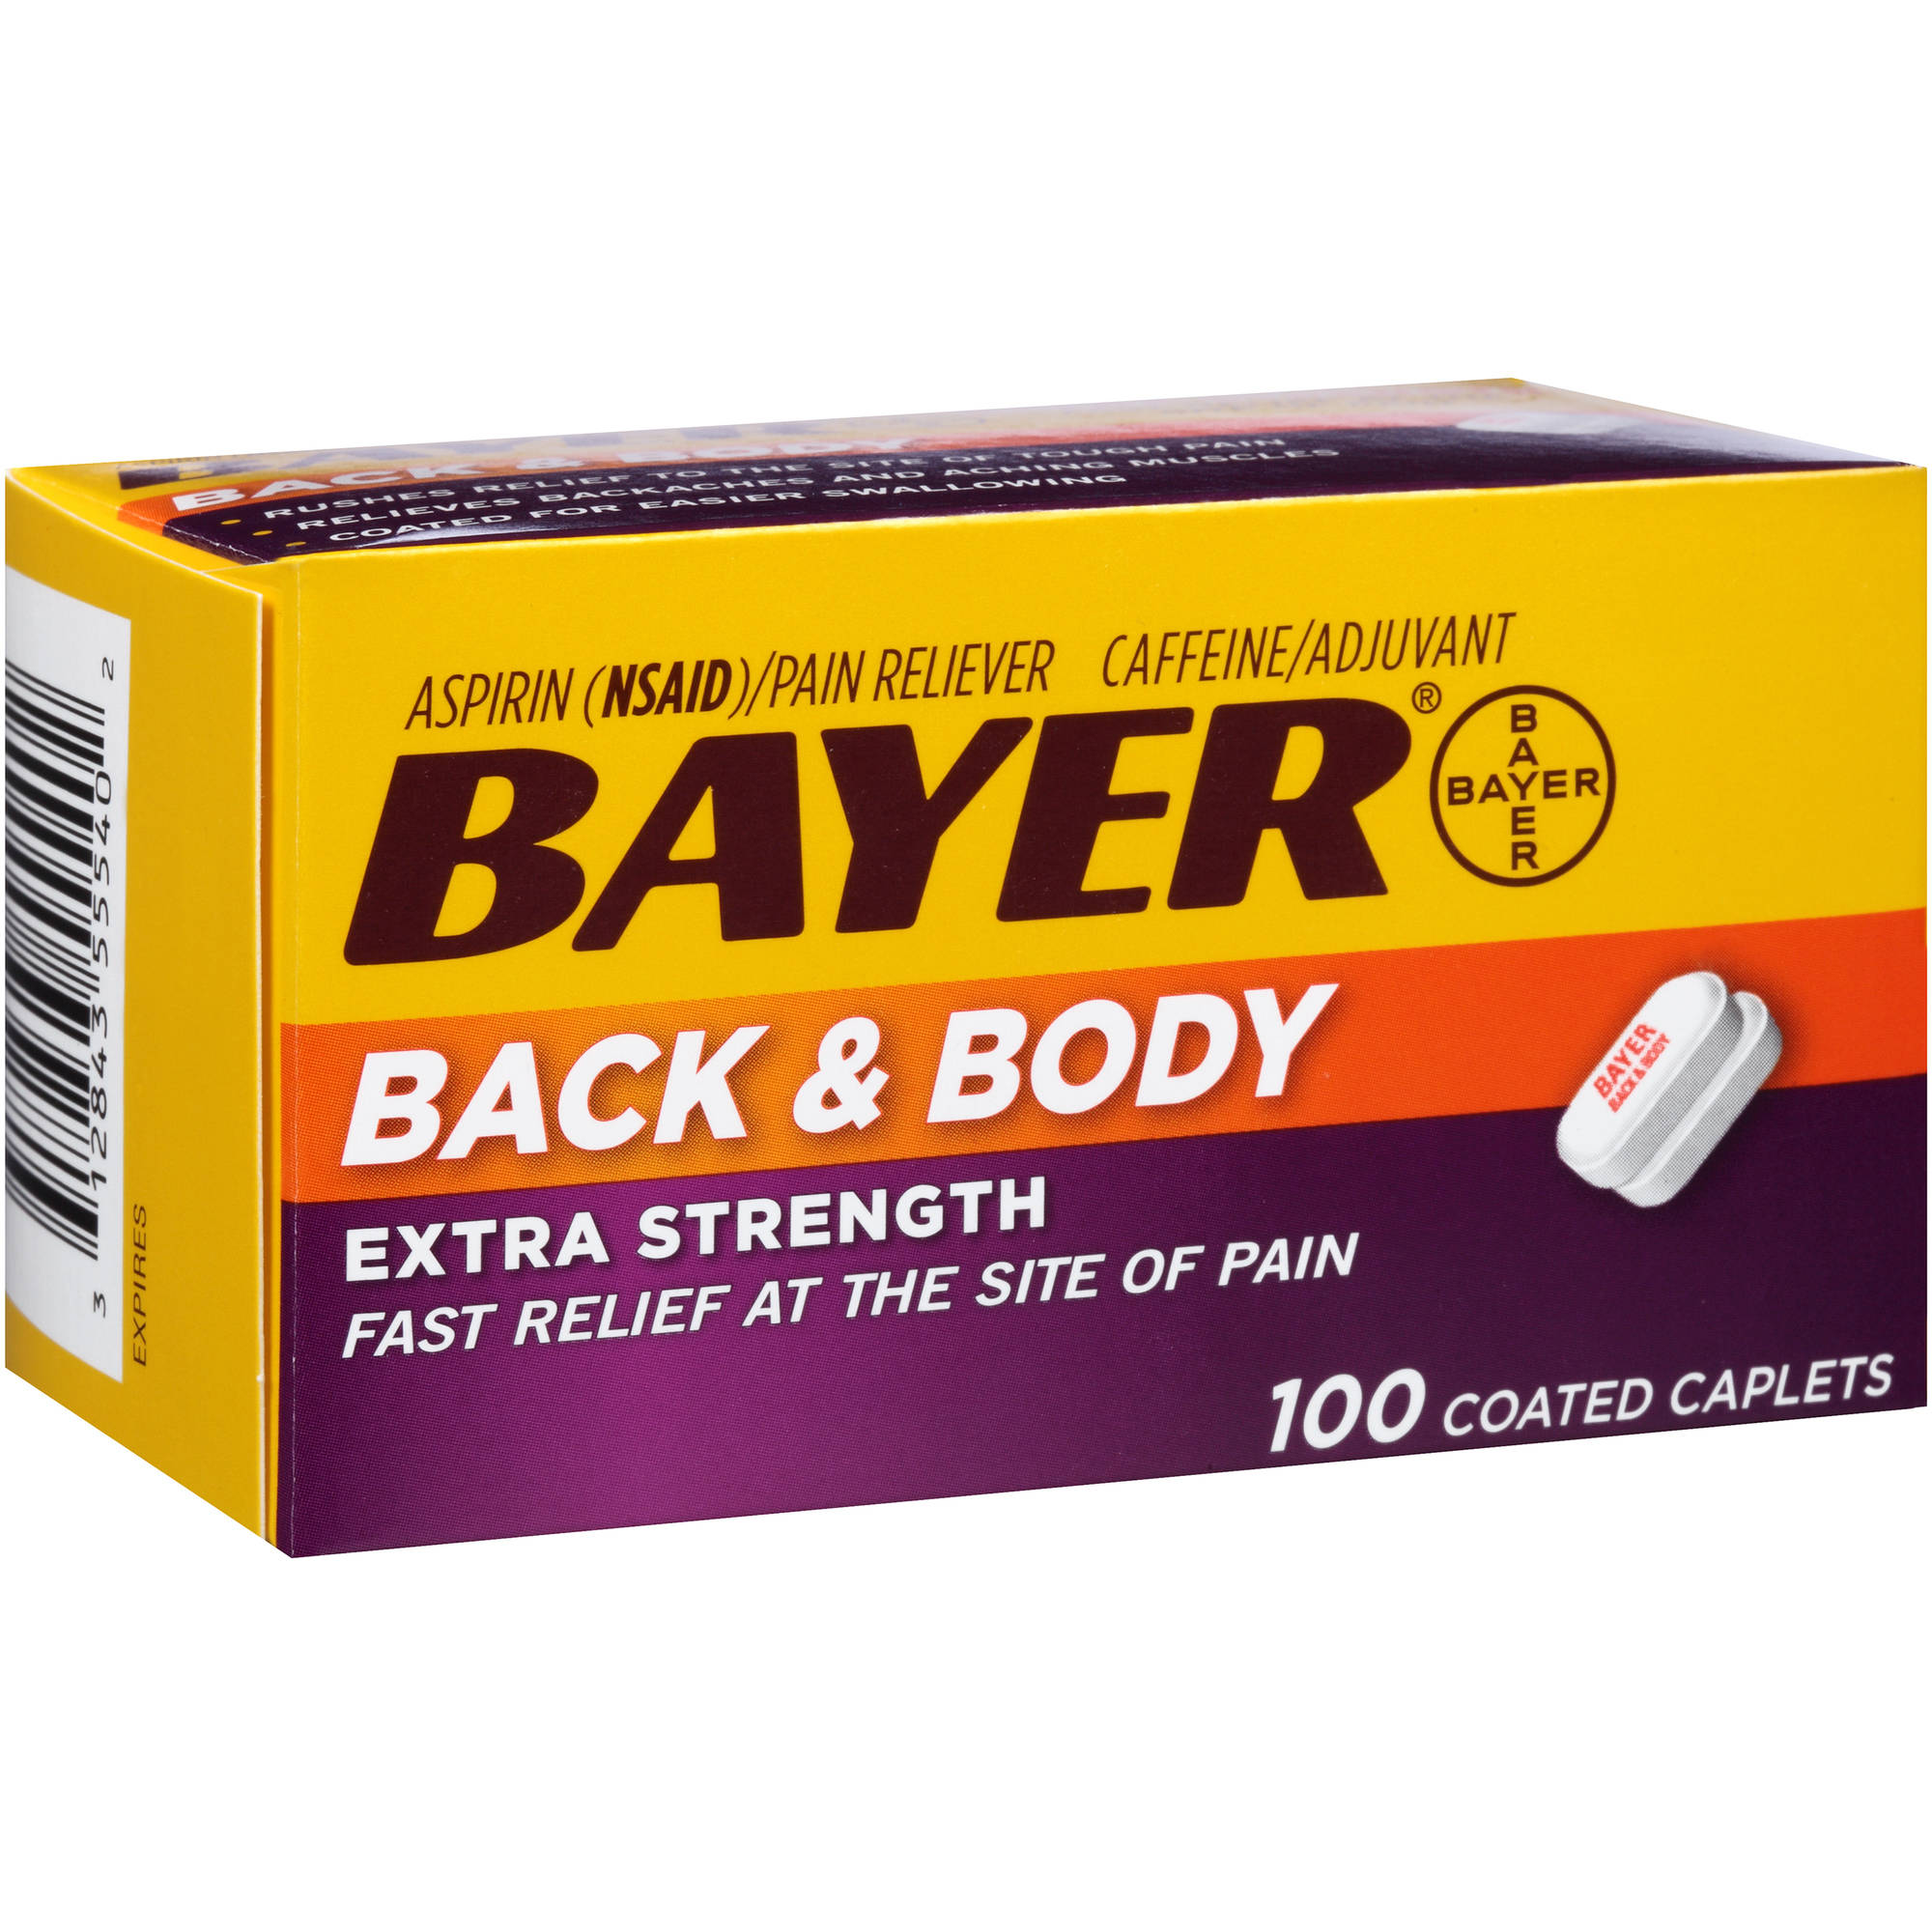 Bayer Extra Strength Back & Body Aspirin Pain Reliever Coated Caplets, 100 count